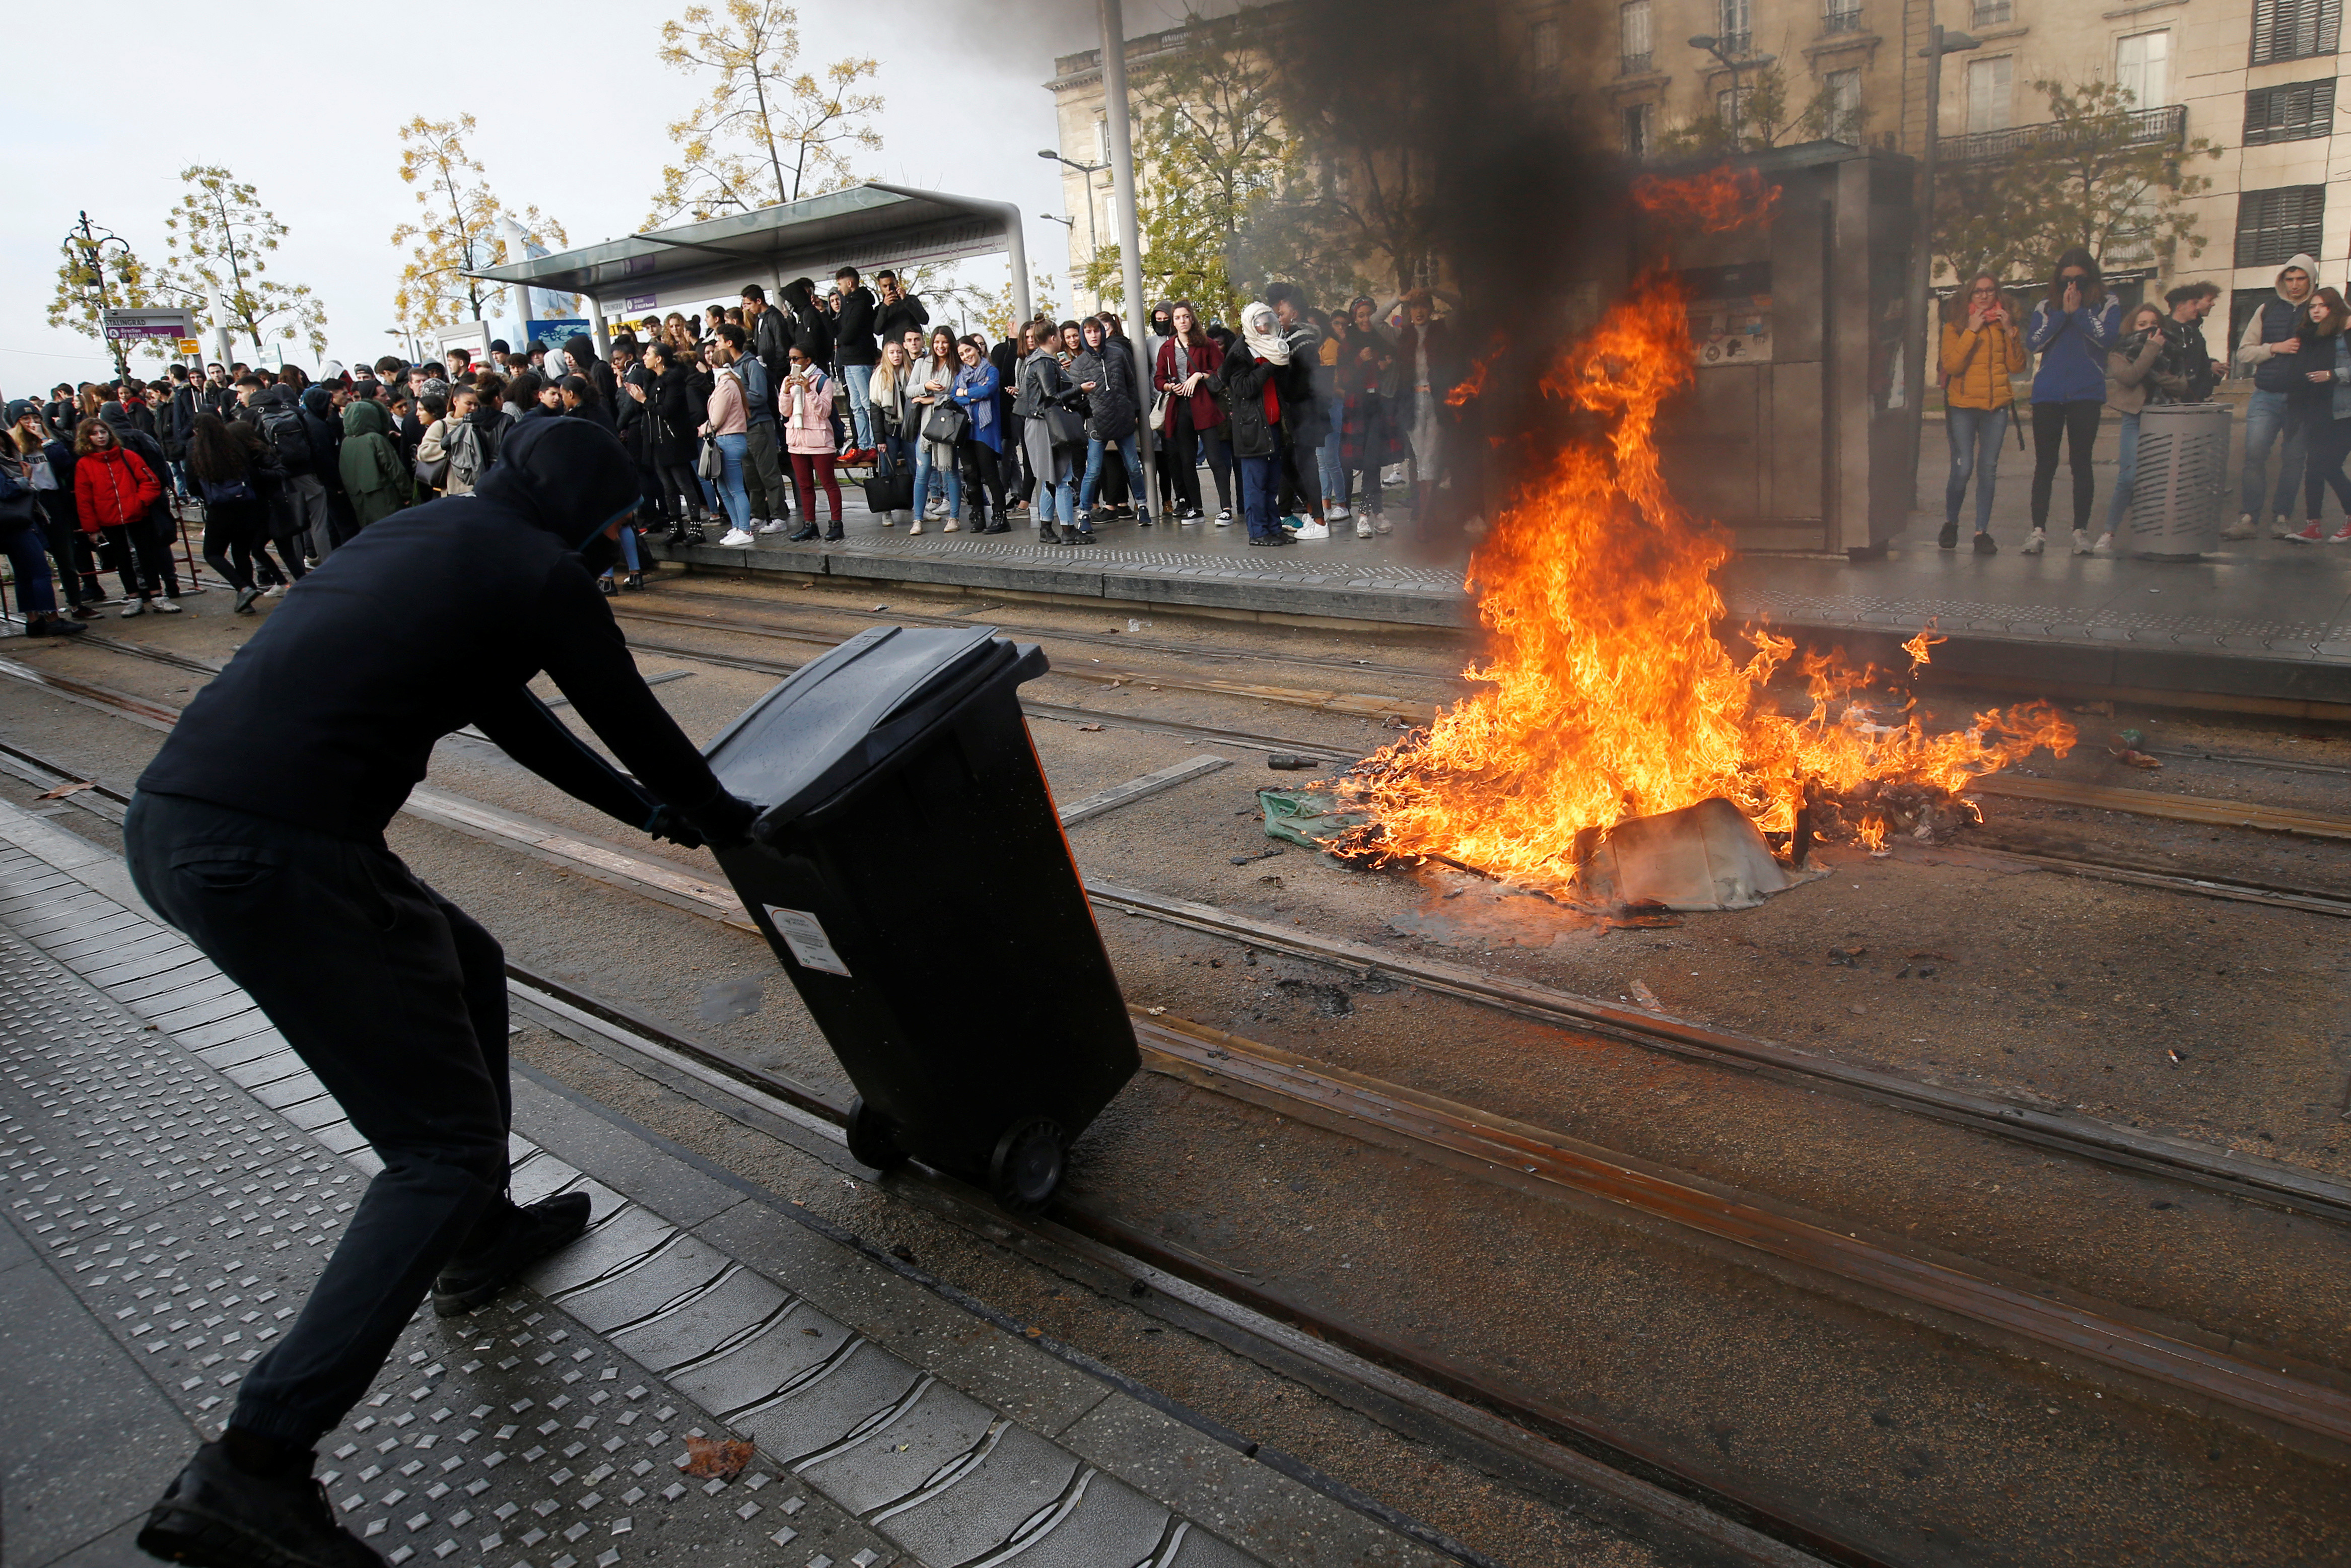 Youths and high school students burn a trash container during a protest against the French government's reform plan, in Bordeaux, France, December 6, 2018. REUTERS/Regis Duvignau - RC1E281B54E0